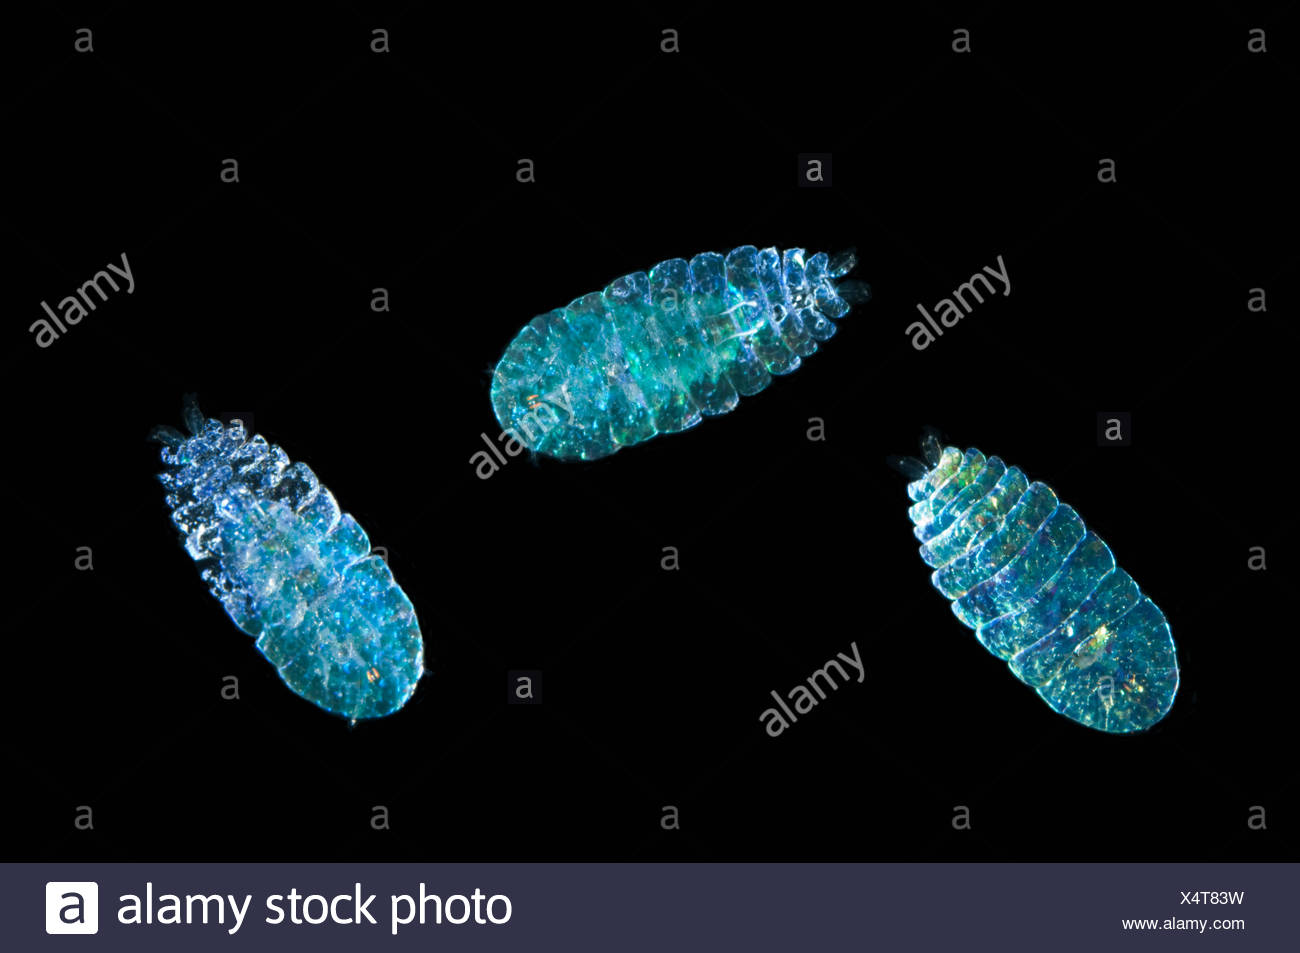 Pelagic copepod {Saphirrina sp} caught with 1m ring net between 0 and 150m, Mid-Atlantic Ridge, North Atlantic Ocean - Stock Image